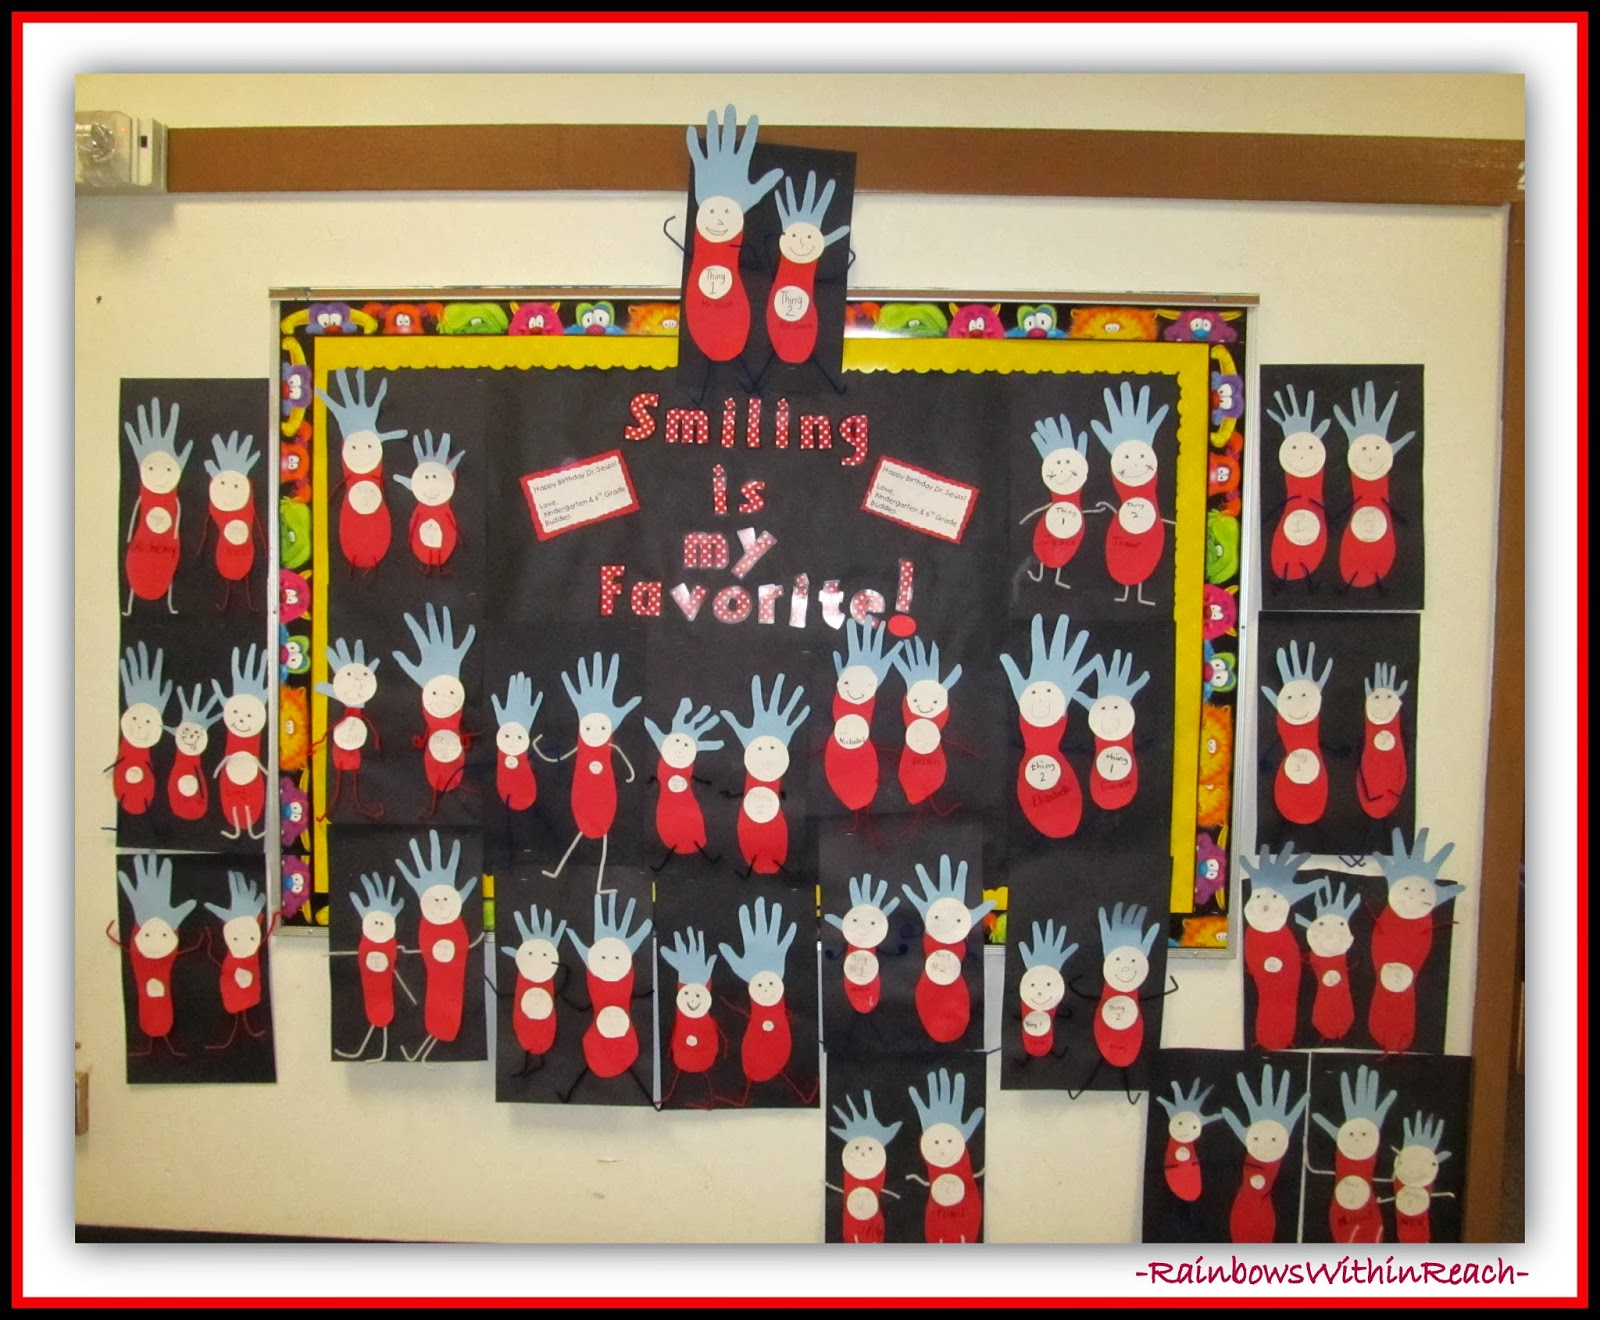 "Dr. Seuss Bulletin Board for ""Things"" from Handprints via RainbowsWithinReach"